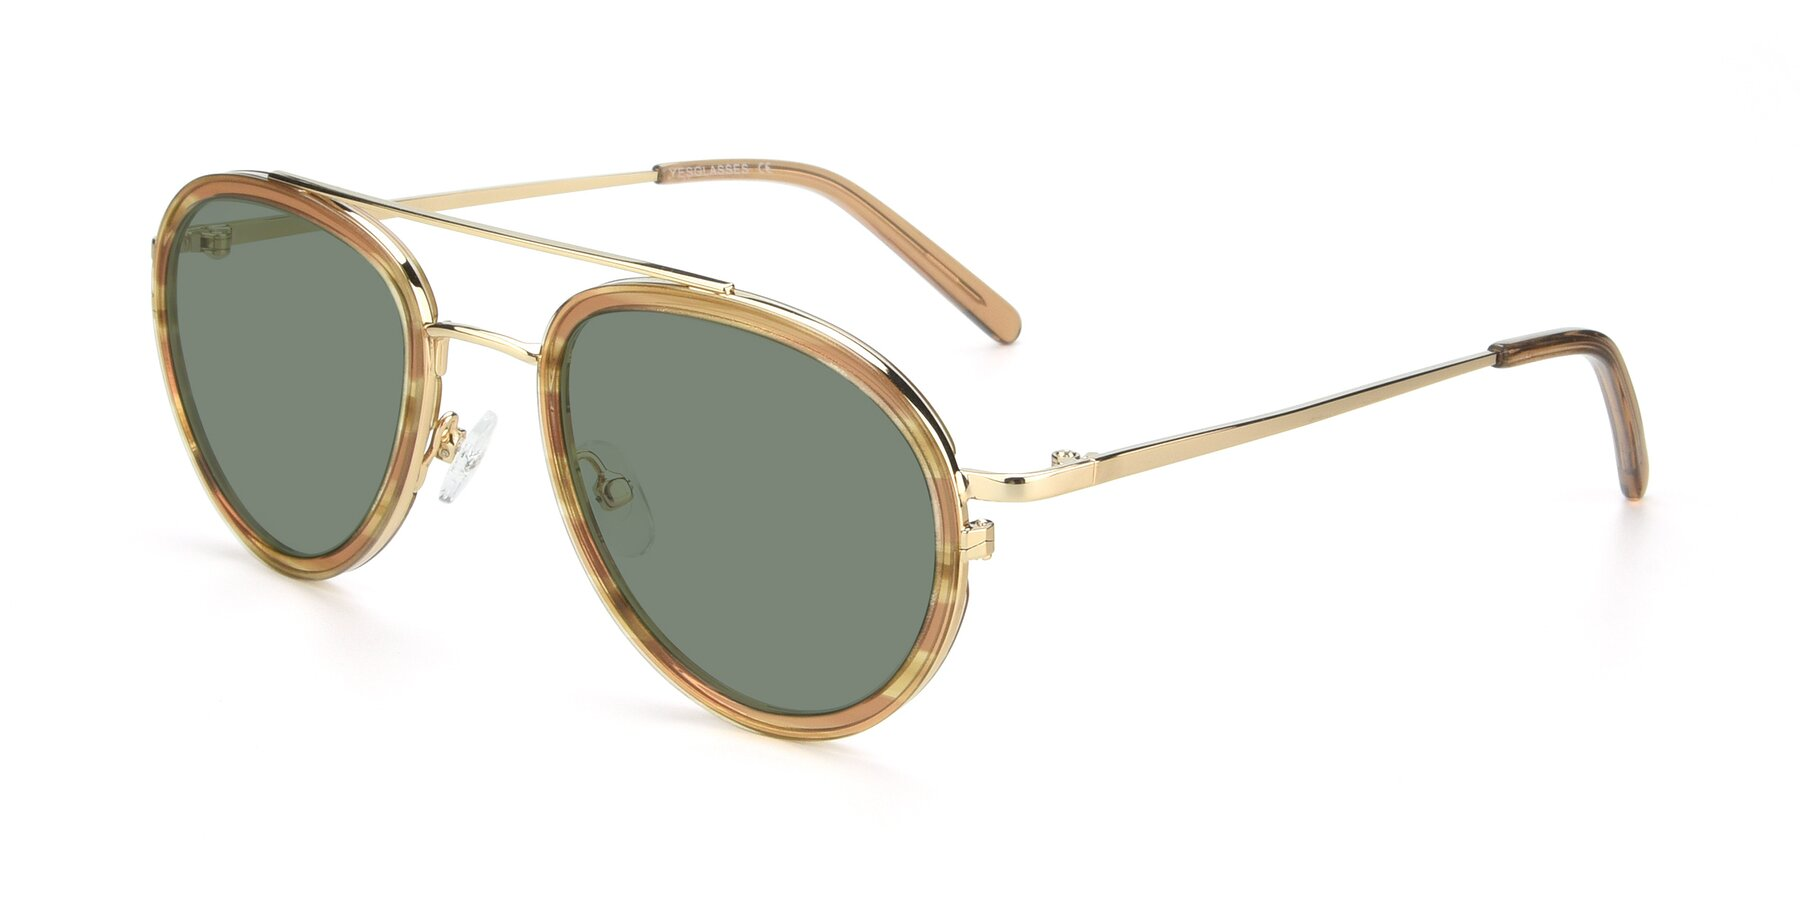 Angle of 9554 in Gold-Caramel with Medium Green Tinted Lenses